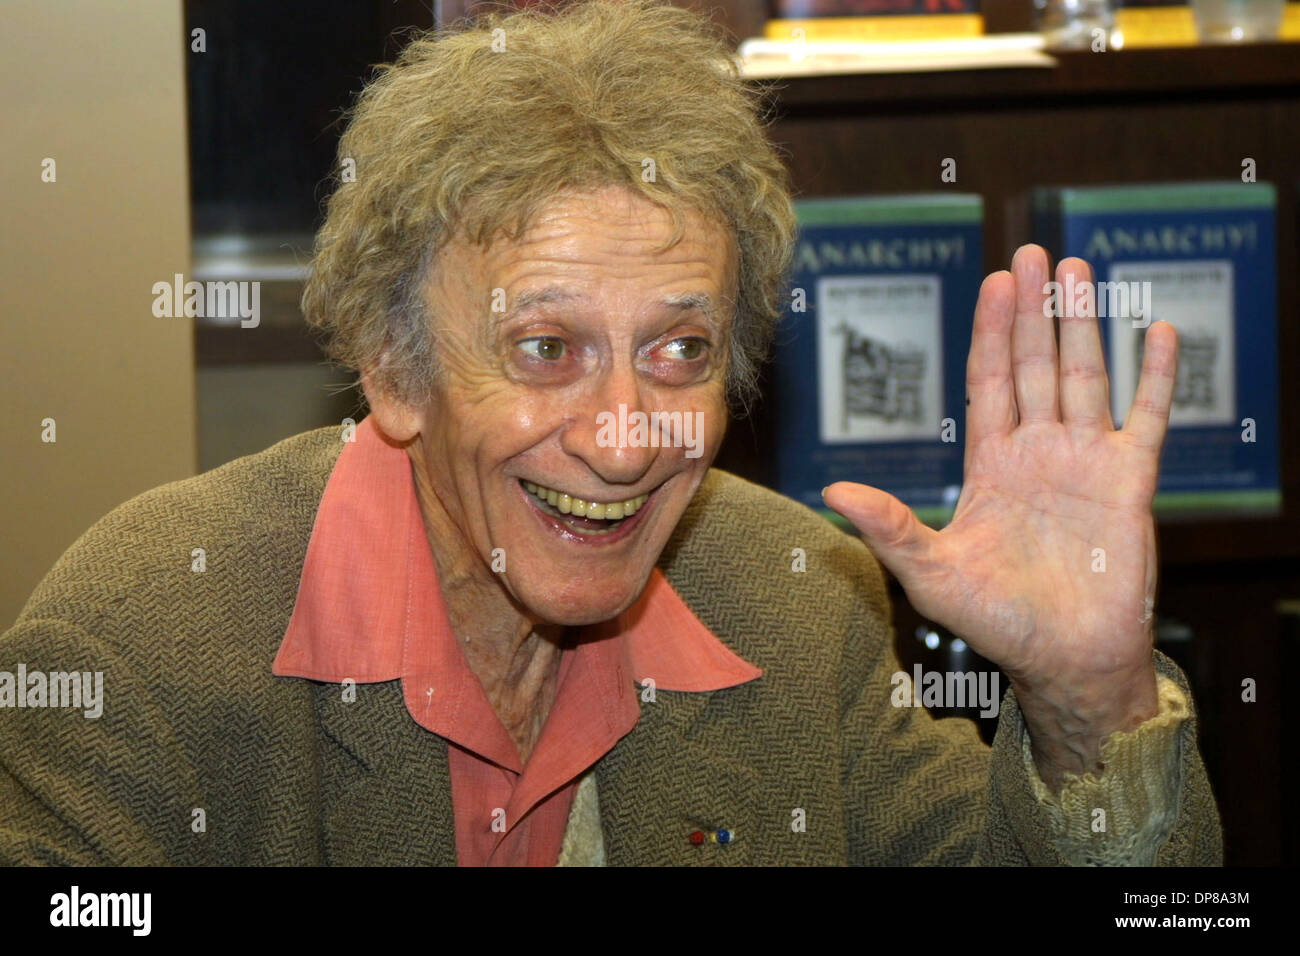 Sep 22, 2007 - Paris, France - Marcel Mangel (March 22, 1923 - September 22, 2007), better known by his stage name MARCEL MARCEAU, was a well-known mime artist, among the most popular representatives of this art form world-wide. For 60 years transfixed international audiences with his stage persona Bip the Clown, inspired by Chaplin's Tramp, has died at the age of 84 in France.   P - Stock Image